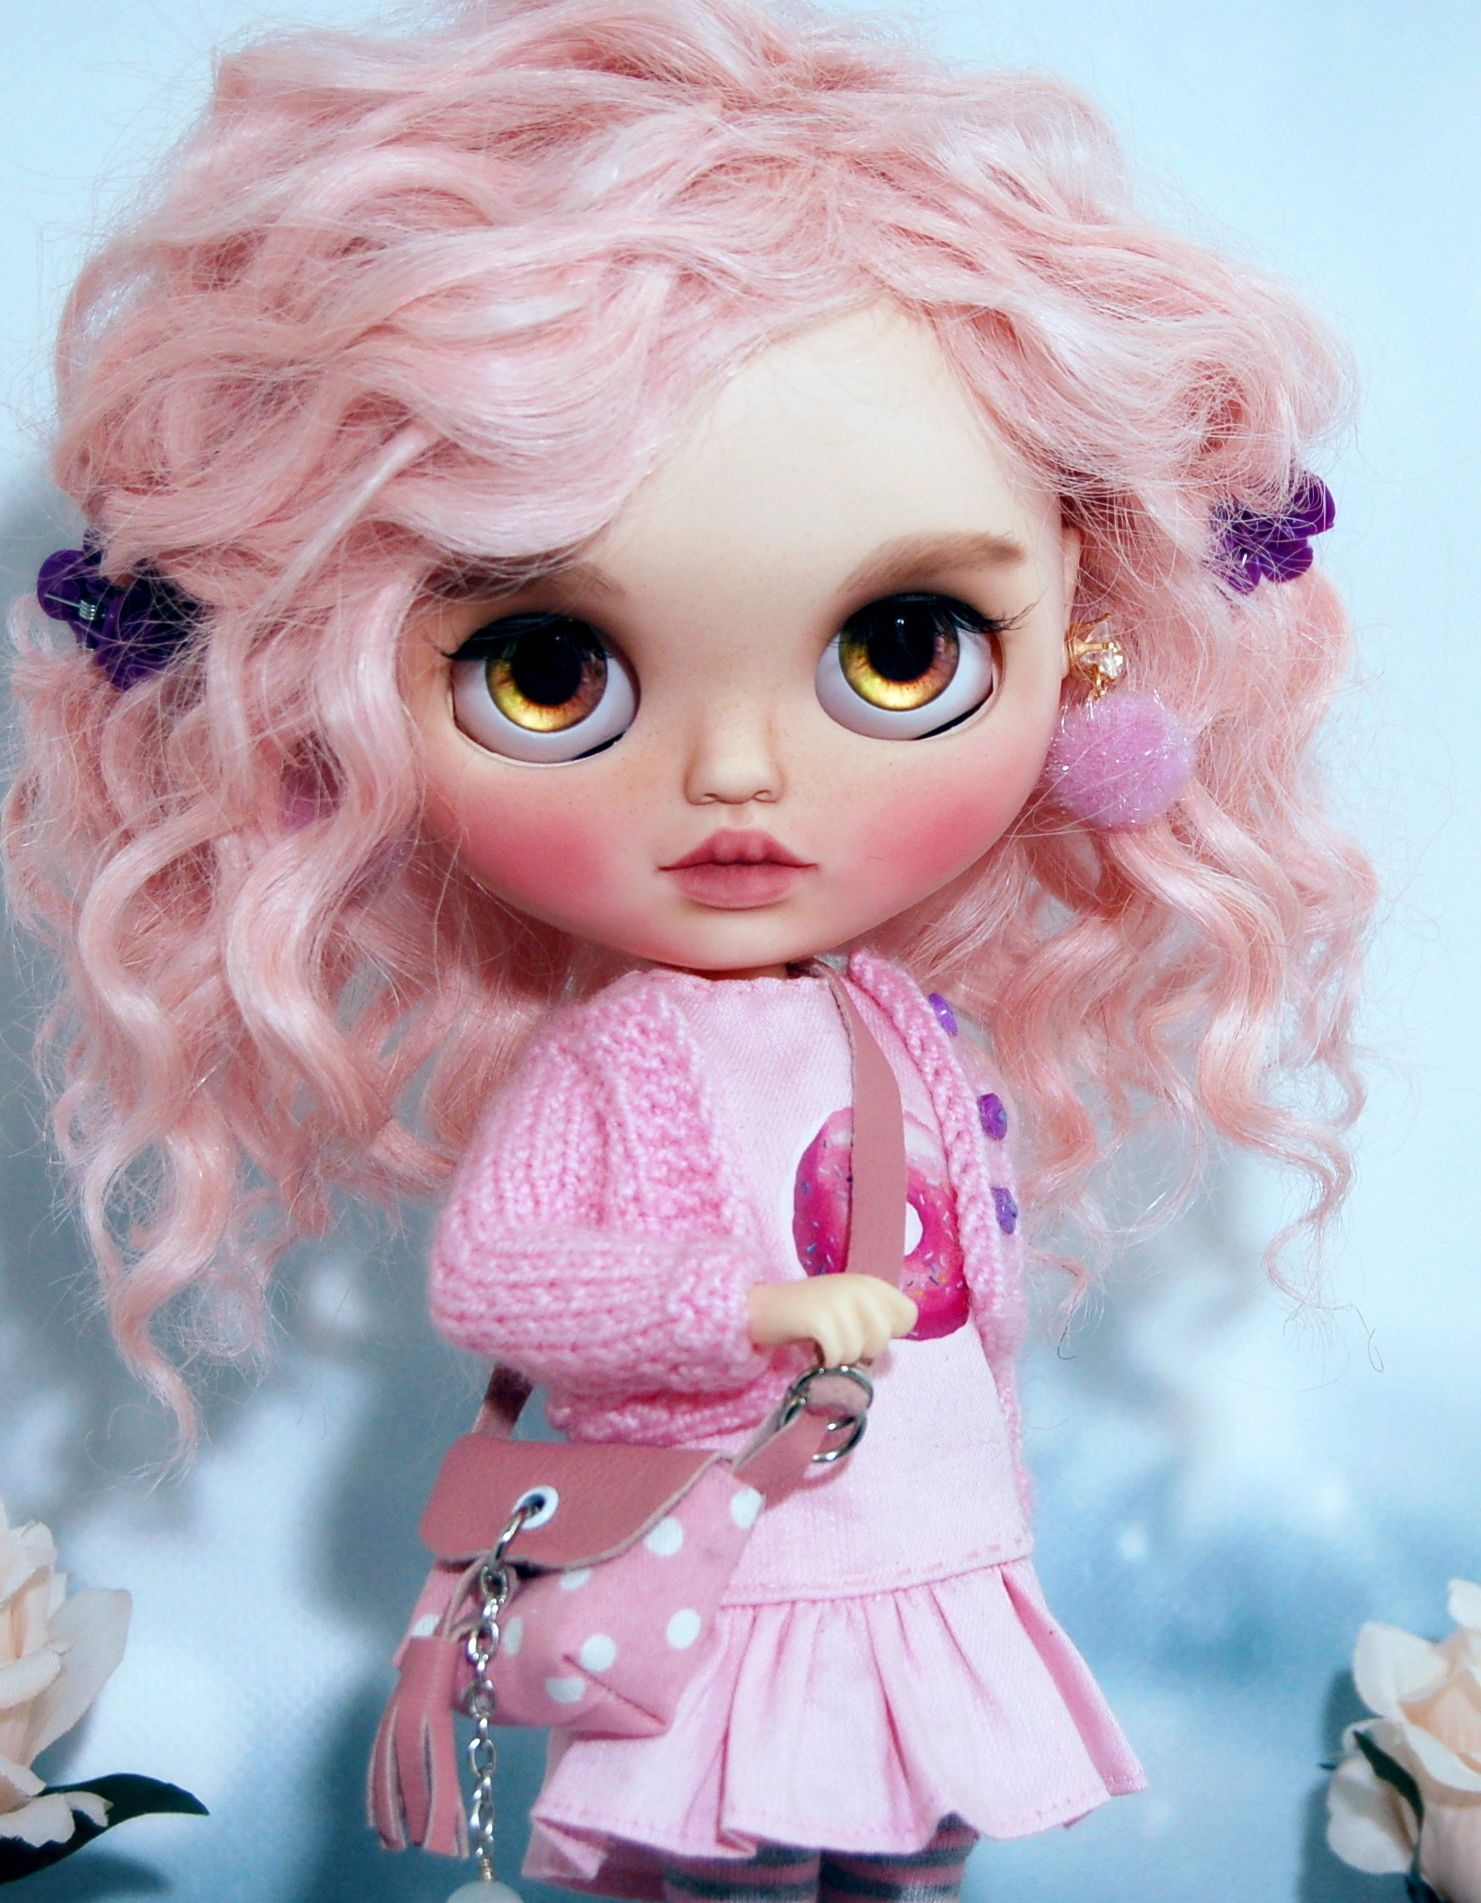 blythe doll, collectible doll, art dolls toy Куклы блайз